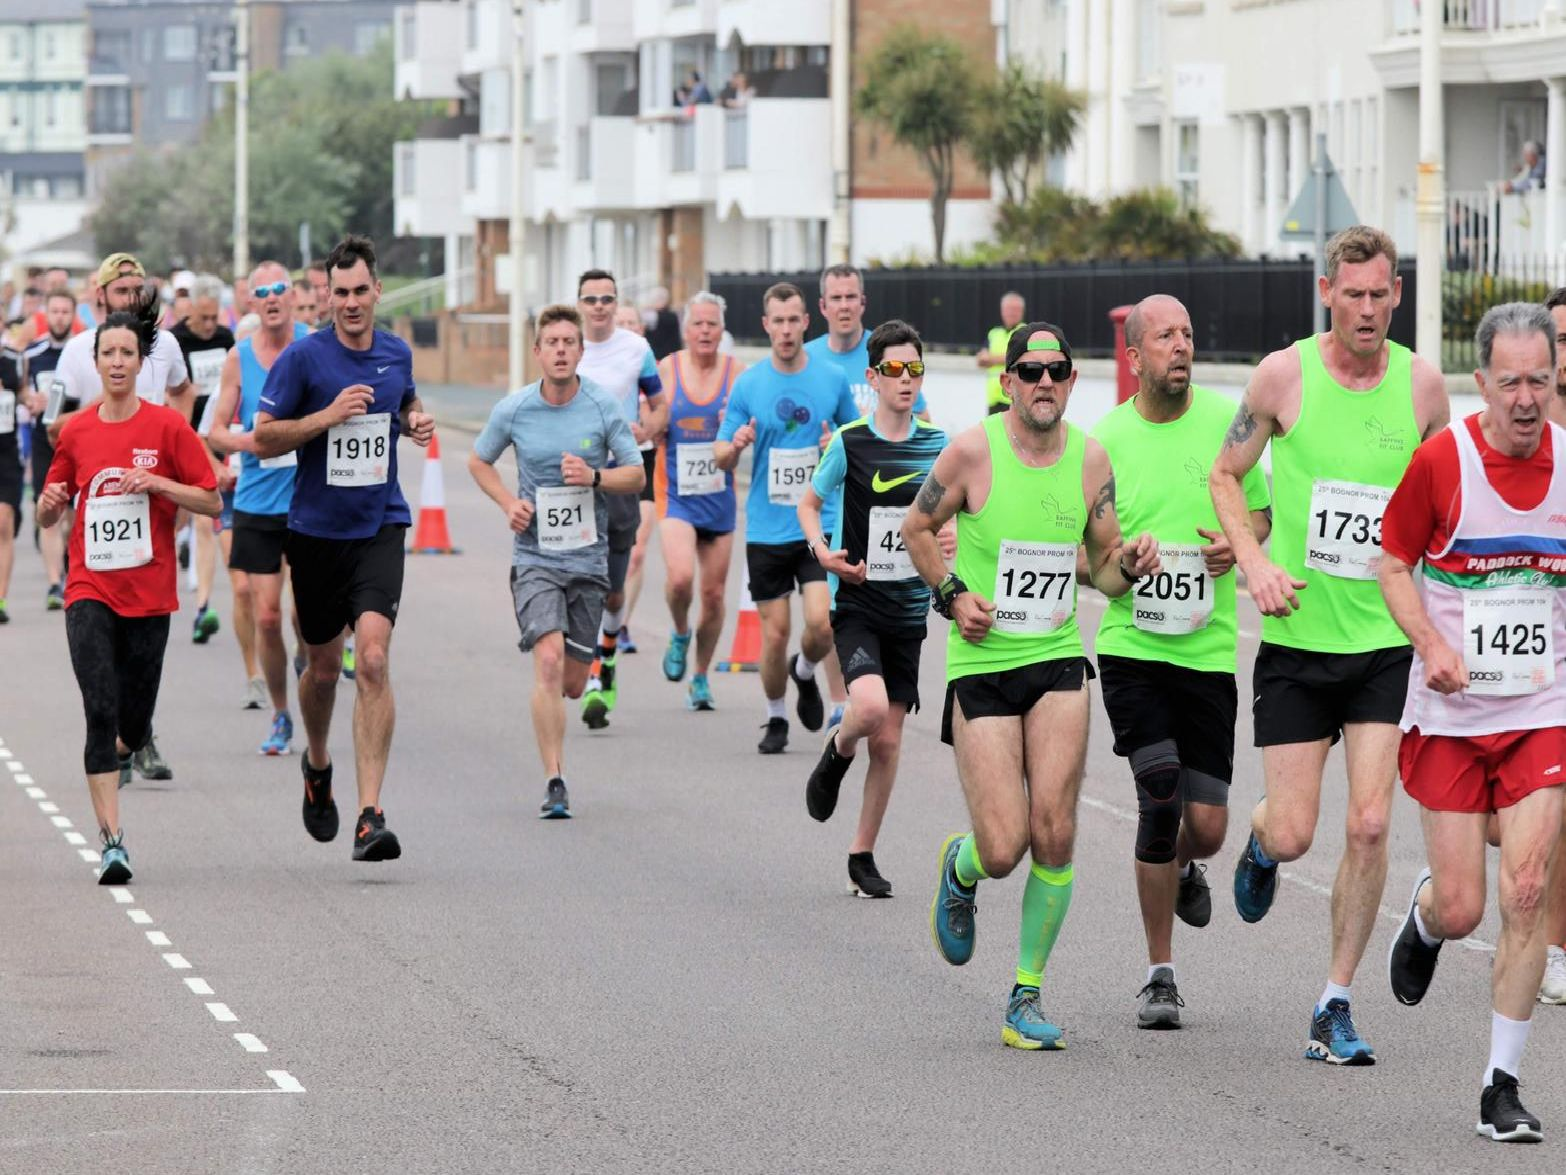 Runners tackle the 2019 Bognor Prom 10k / Pictures by Neil Cooper